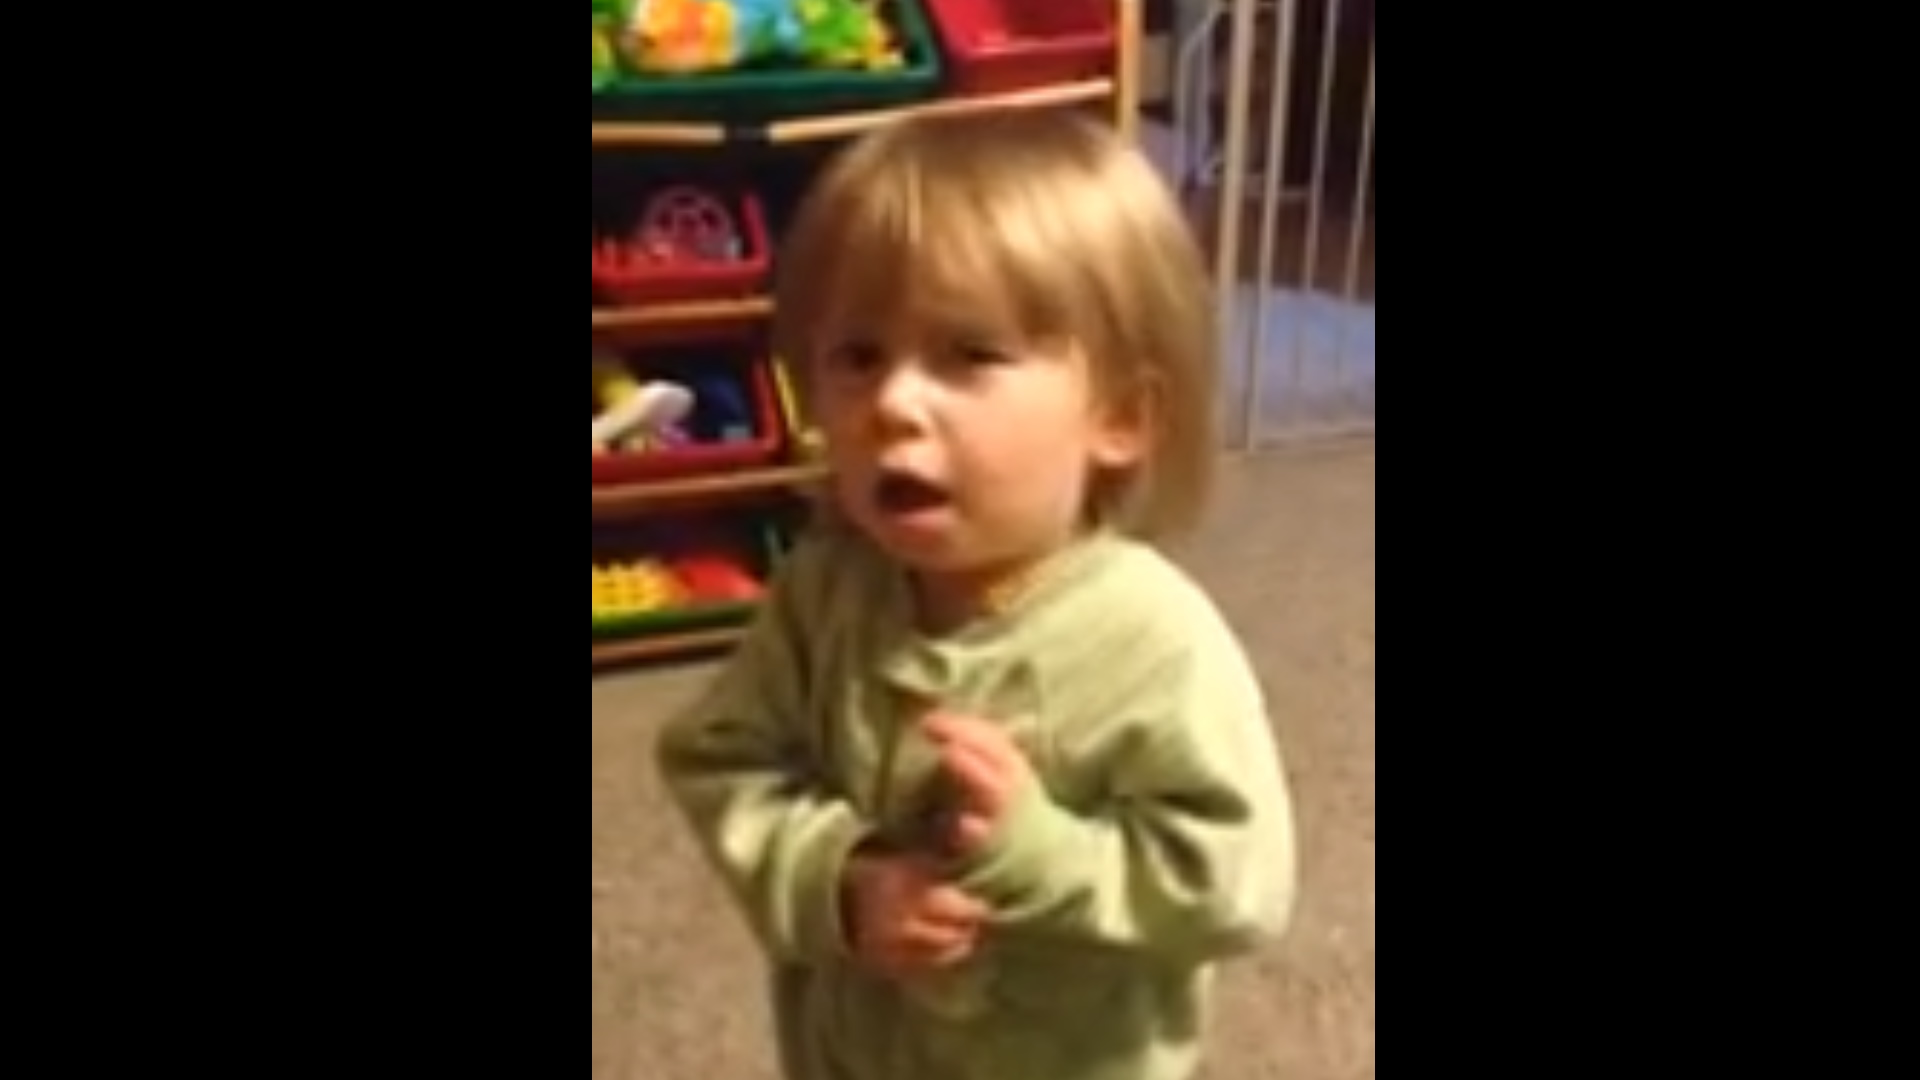 Funniest and cutest faces you will ever see!